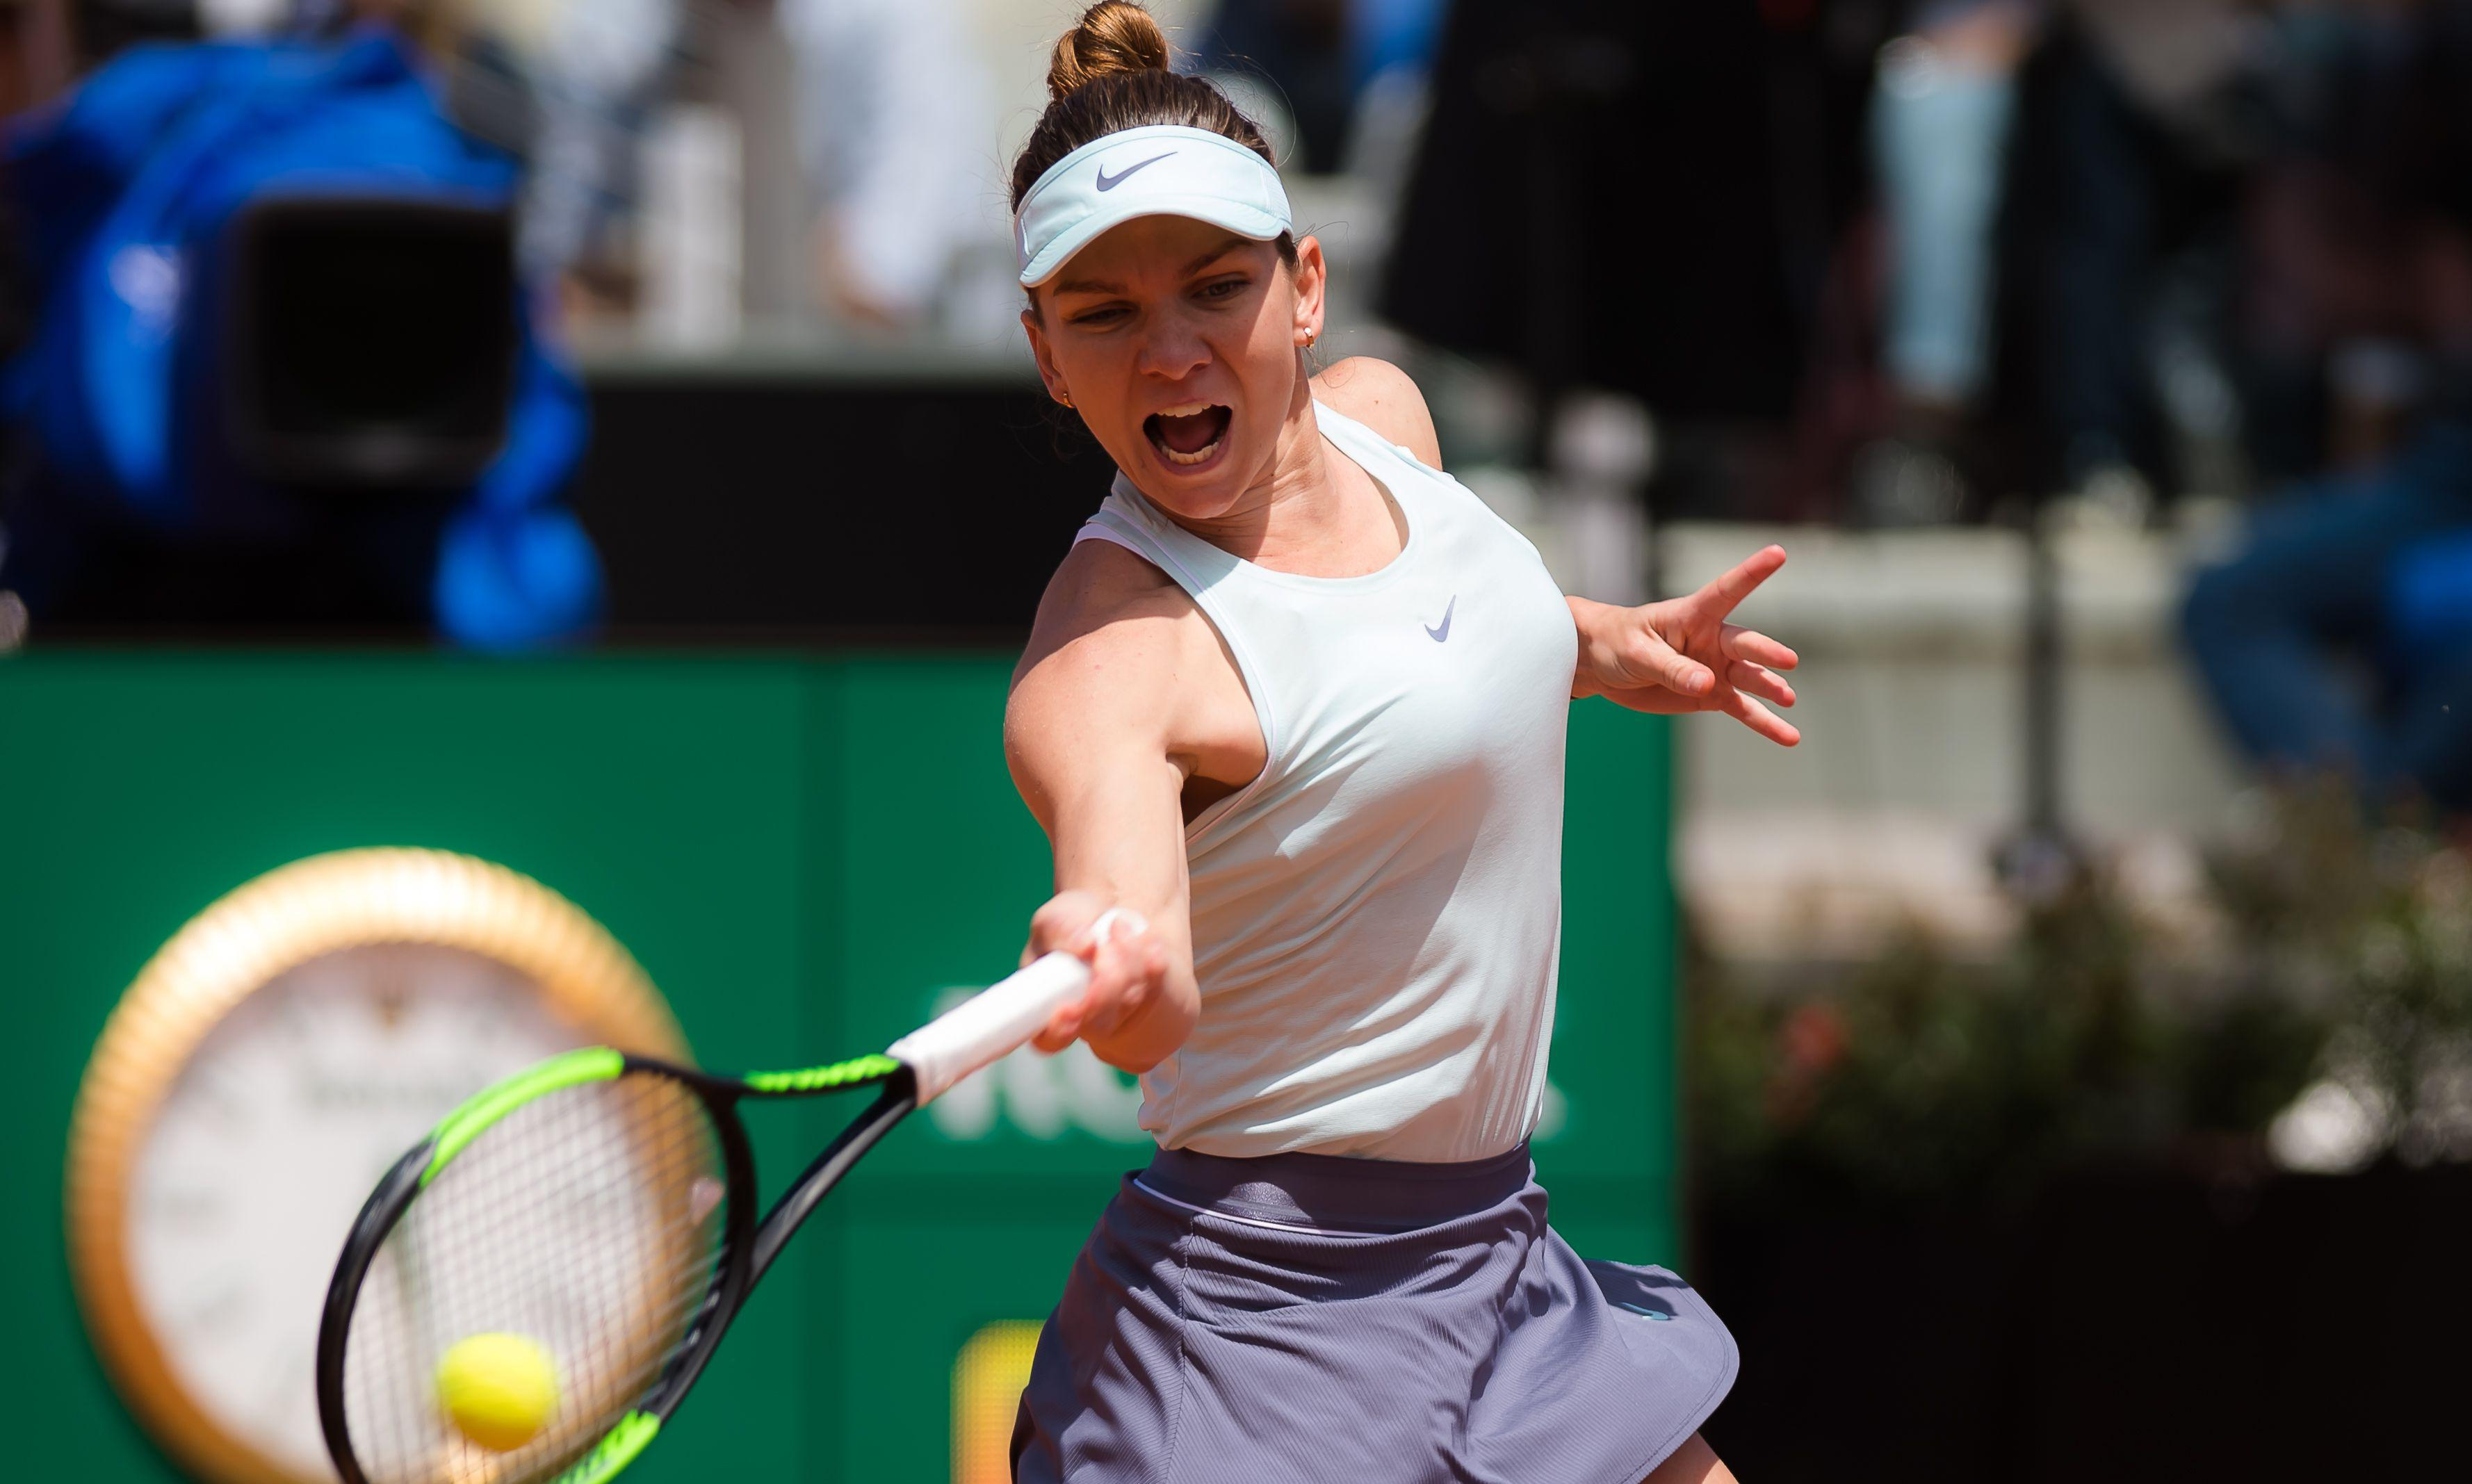 French Open women's form guide: the players to watch at Roland Garros